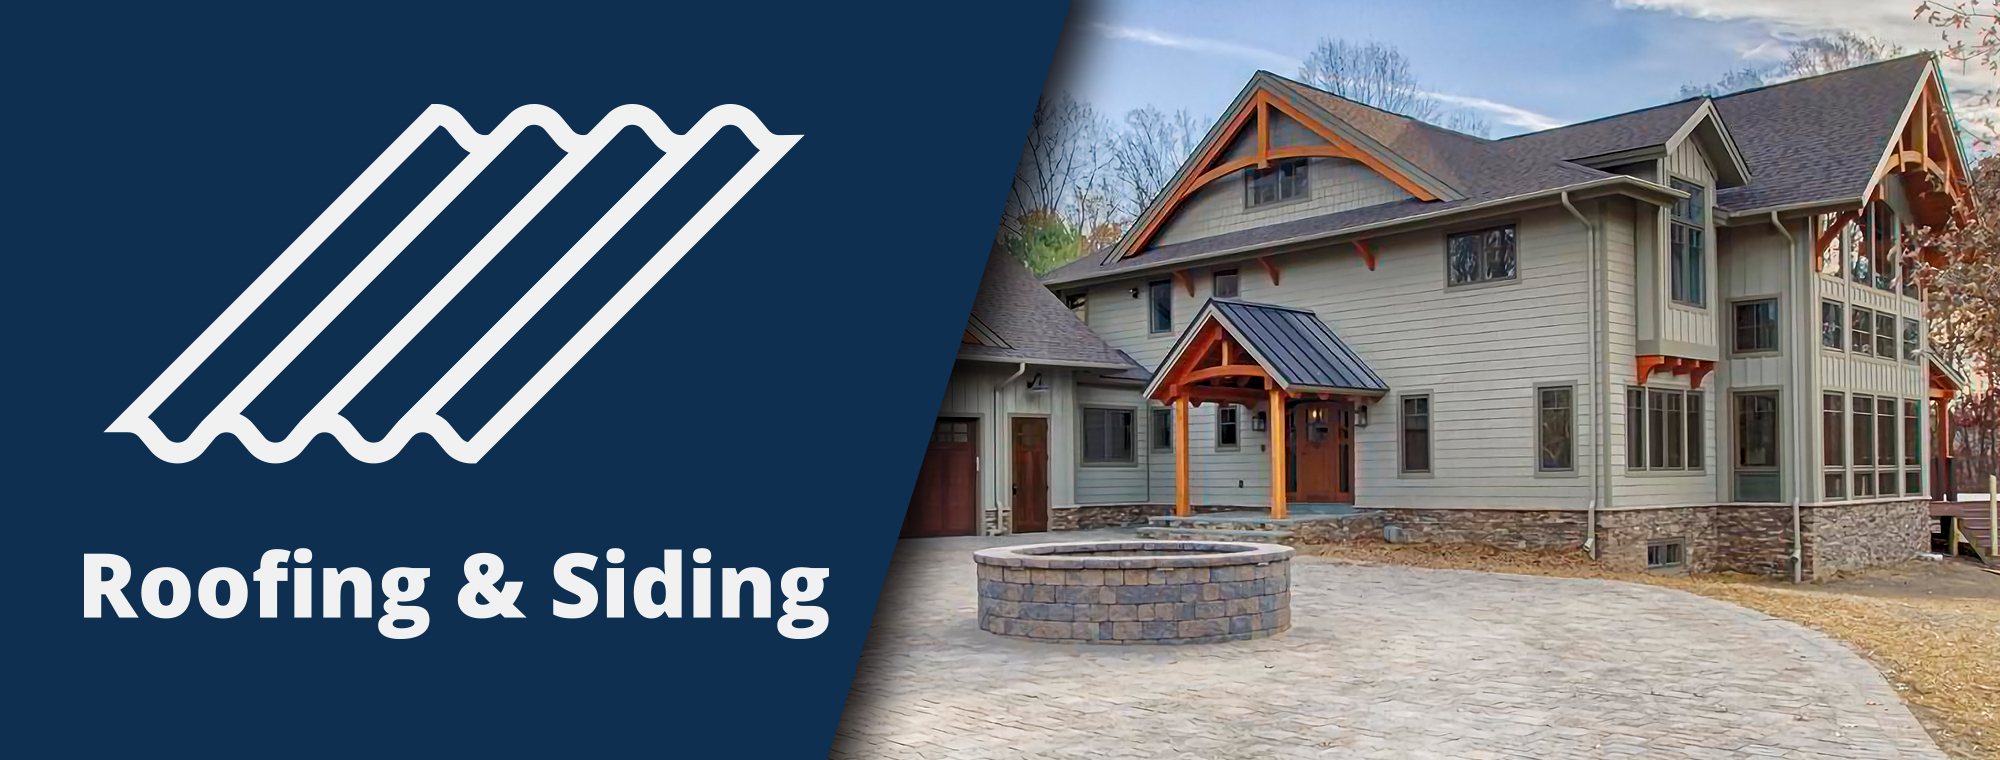 roofing and siding contractor columbia maryland